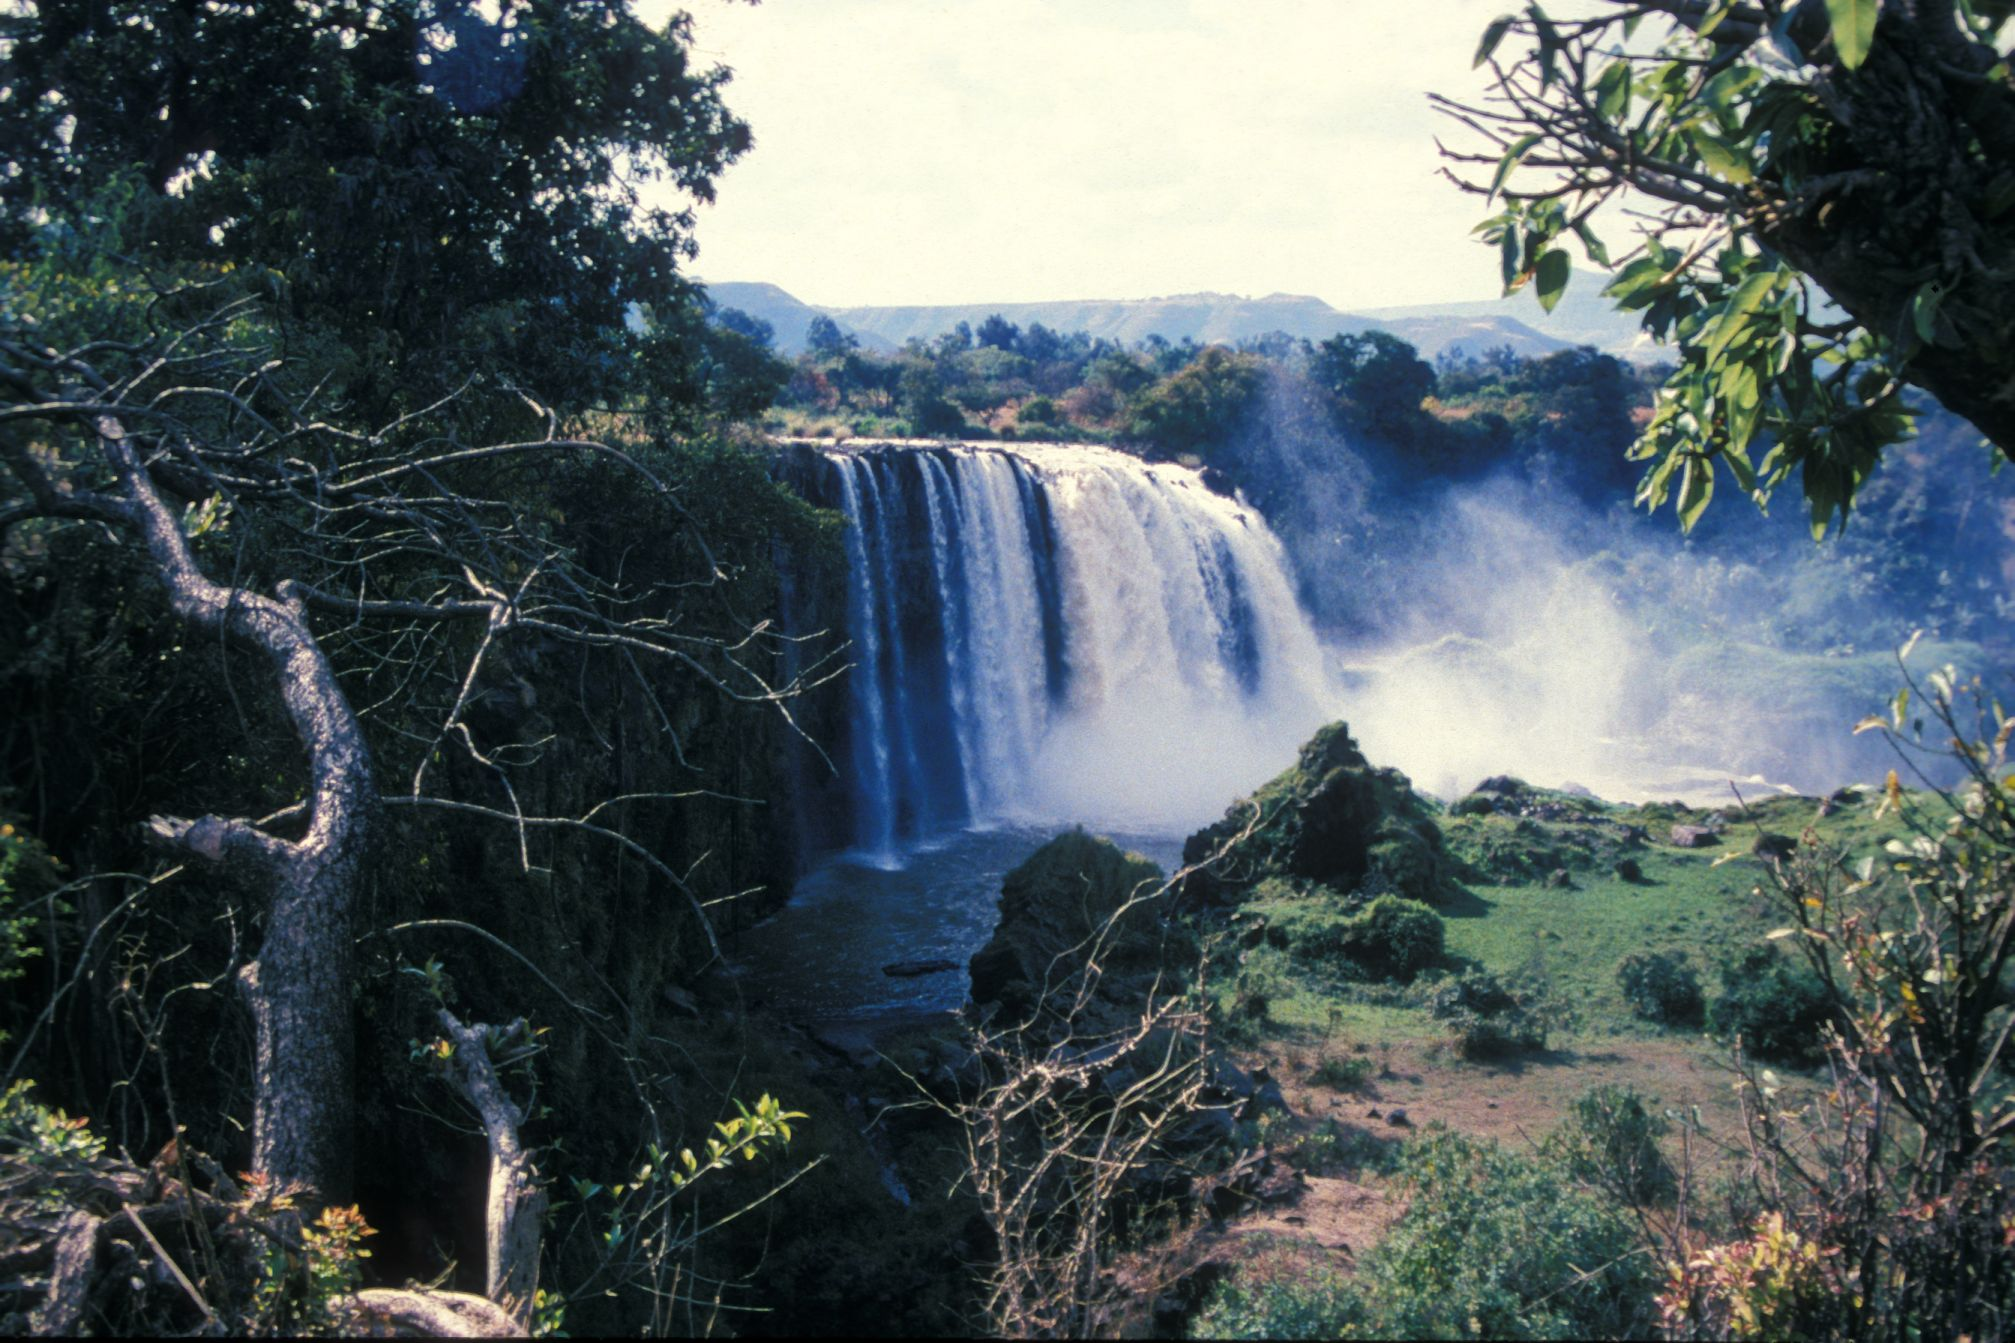 Blue Nile Gorge Northern Ethiopia, The Blue Nile River – Africa Facts and Information